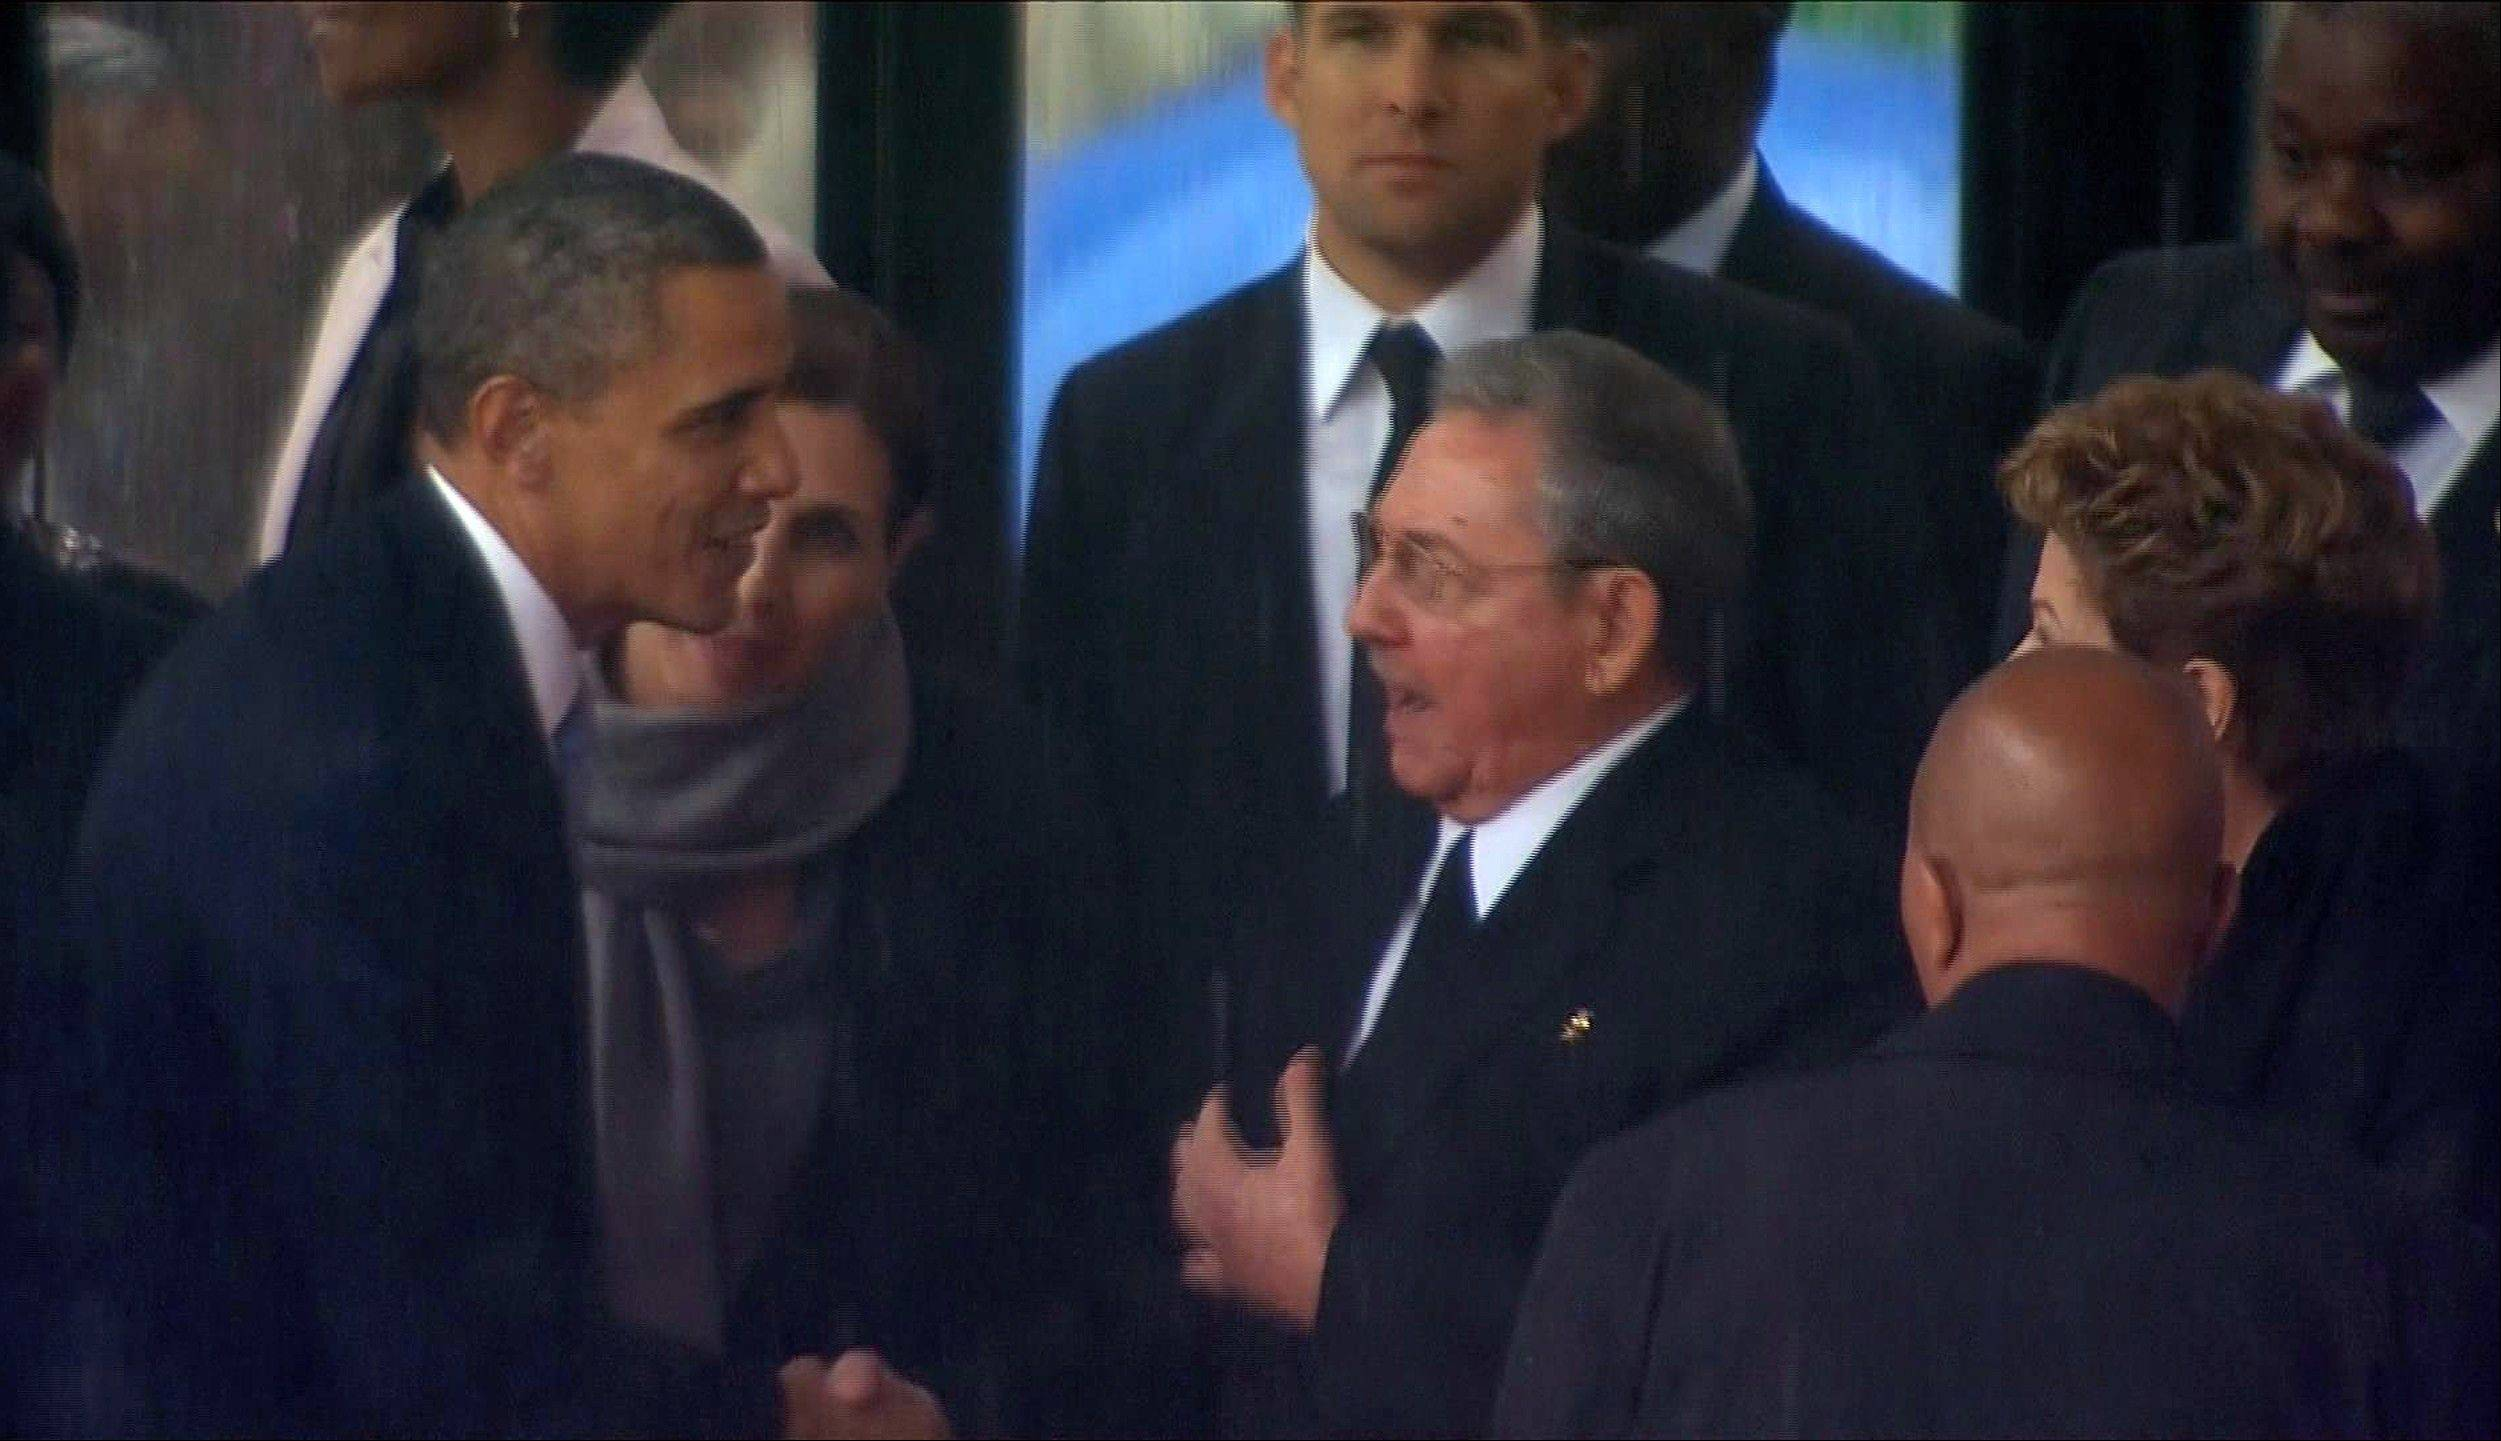 In this image from TV, U.S. President Barack Obama shakes hands with Cuban President Raul Castro at the FNB Stadium in Soweto, South Africa, in the rain for a memorial service for former South African President Nelson Mandela, Tuesday Dec. 10, 2013. The handshake between the leaders of the two Cold War enemies came during a ceremony that's focused on Mandela's legacy of reconciliation.